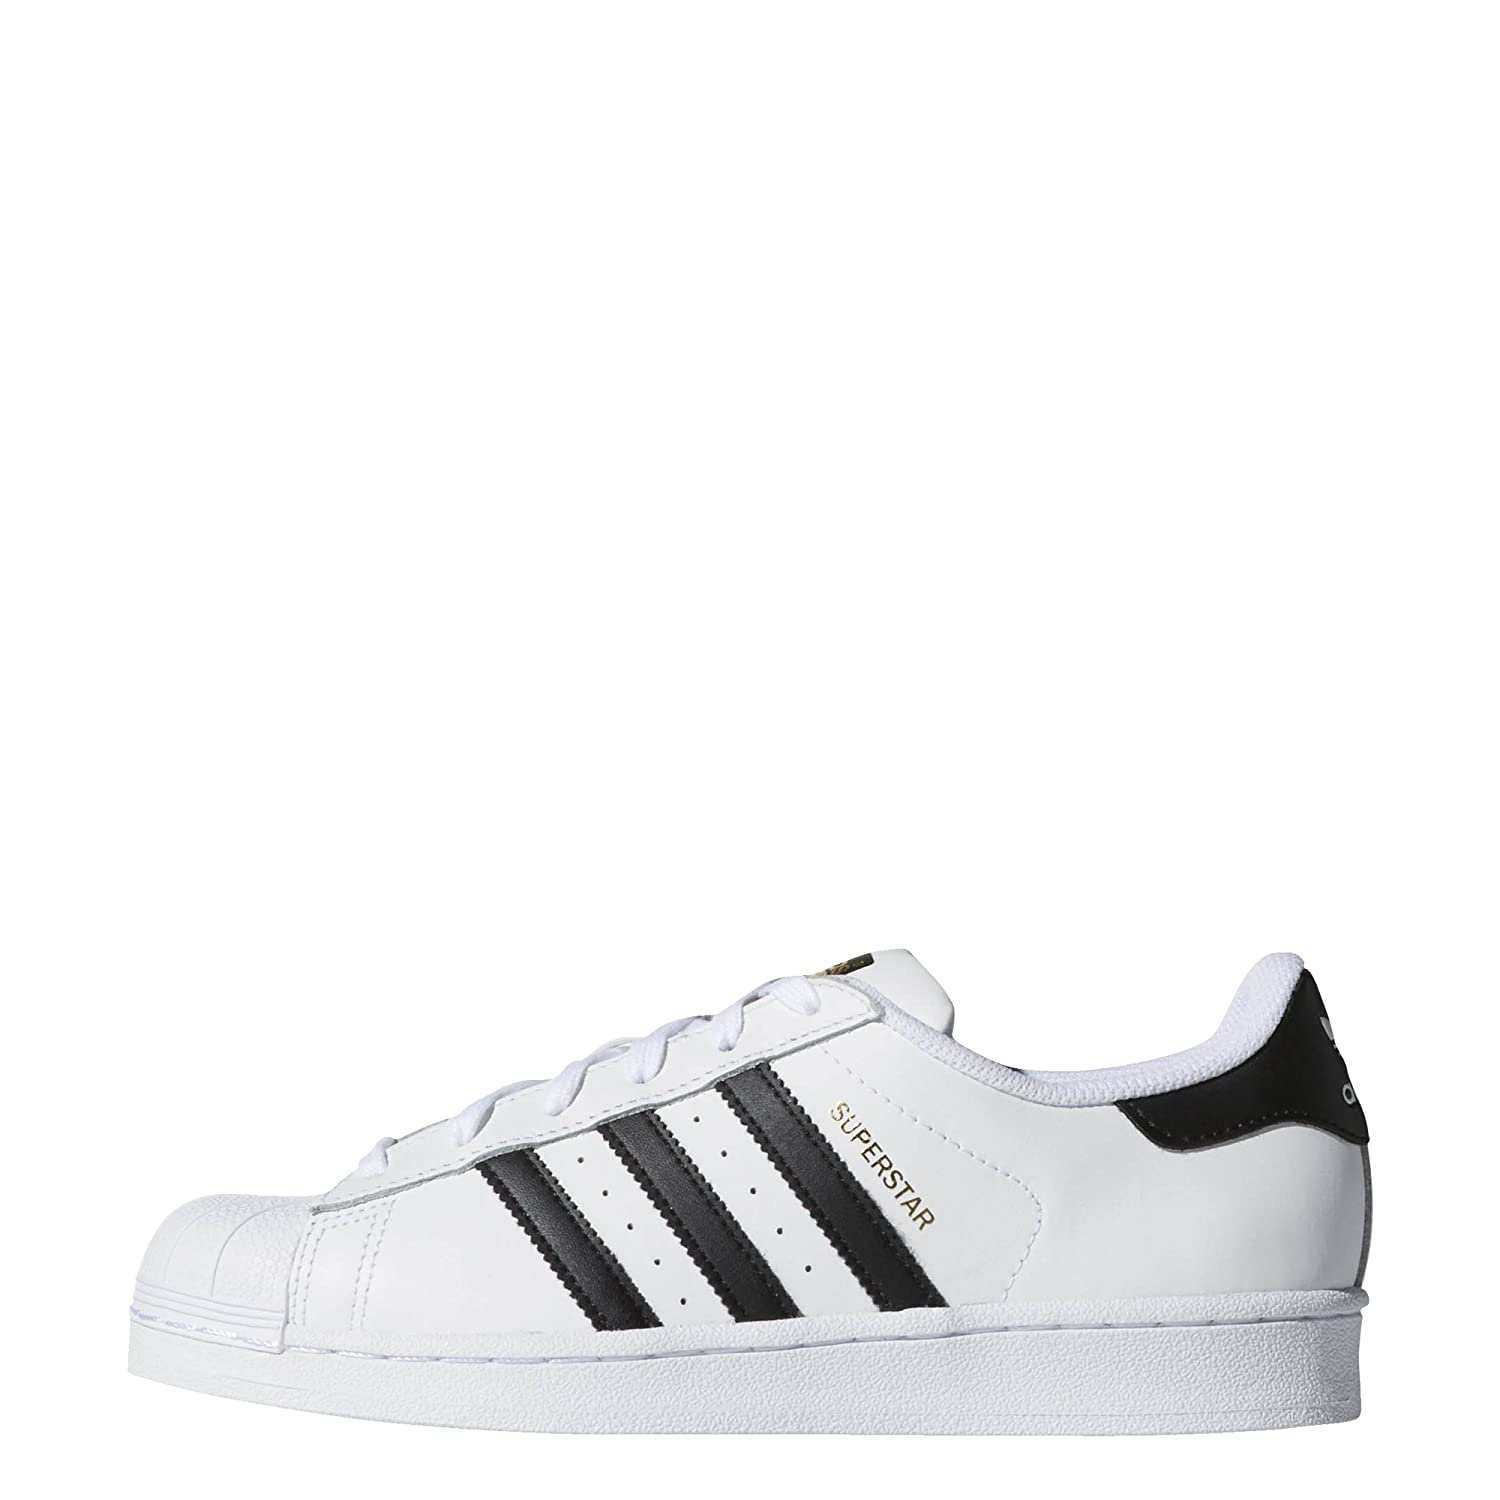 adidas Superstar Black W, Sneakers Basses Femme, Weiß Footwear 19092 White White Core Black b84285d - shopssong.space